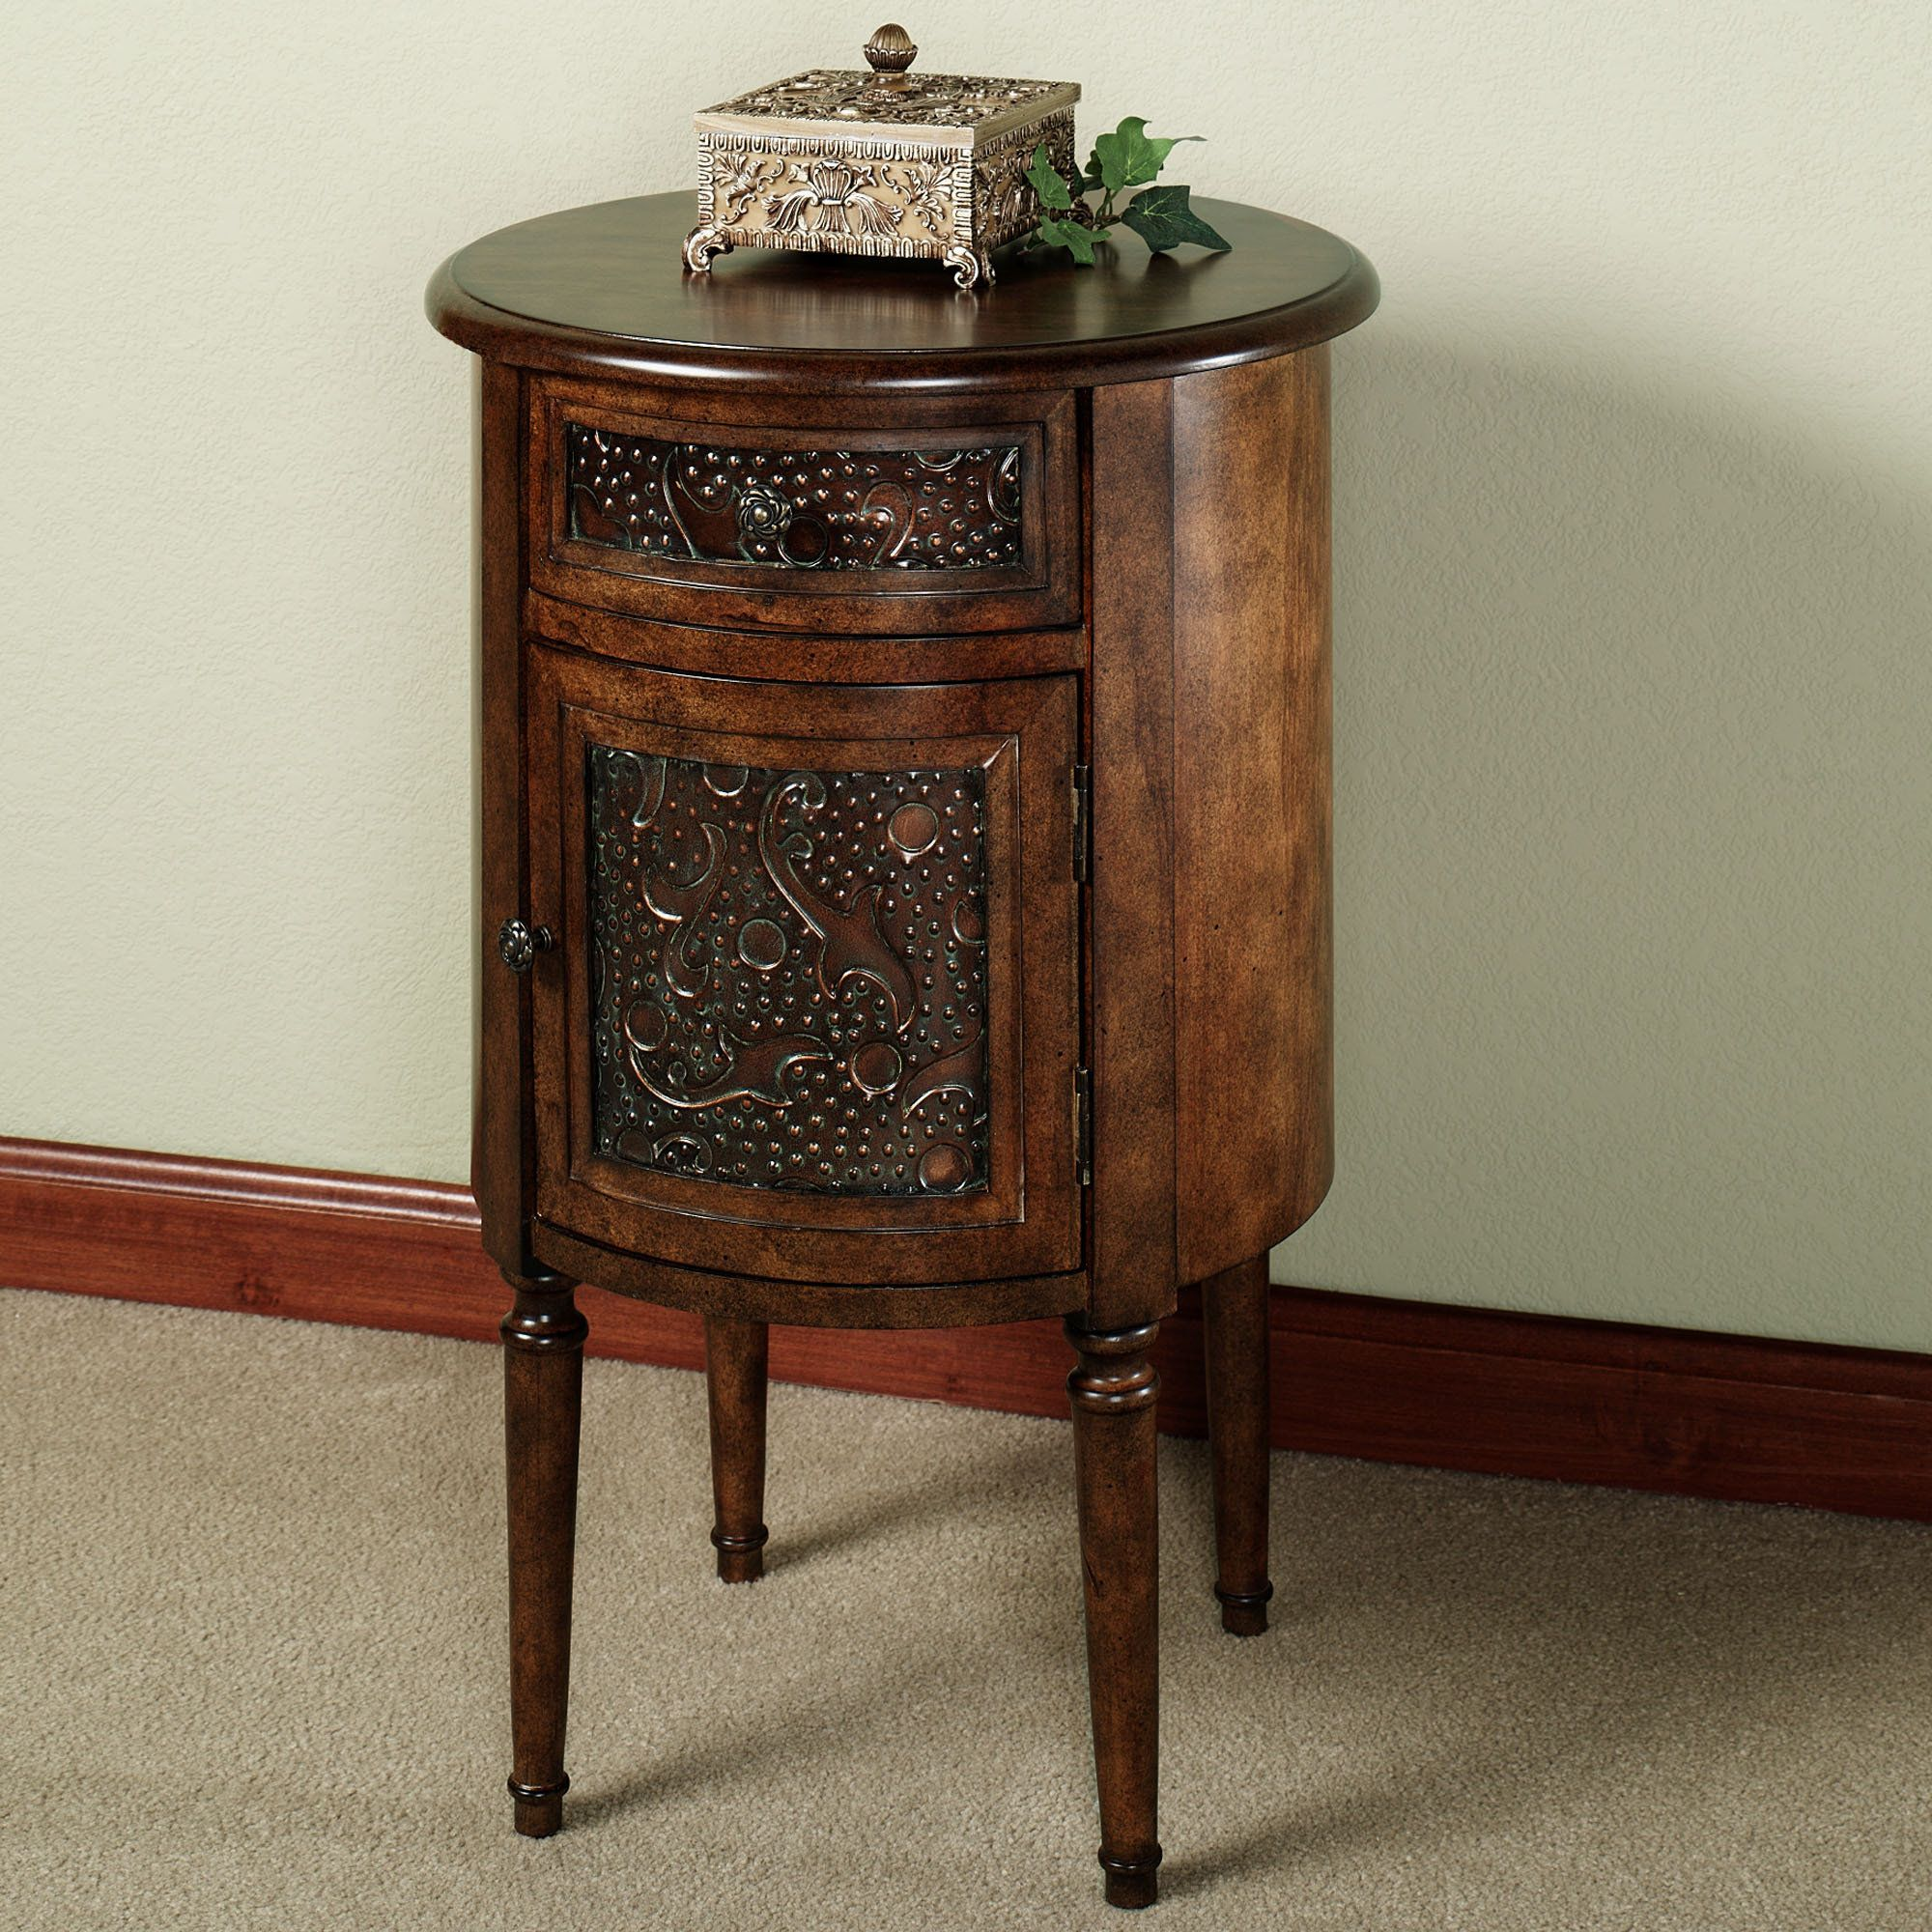 sketch tall accent table stylish item for utilizing the empty bedroom tables space mirrored dresser target solid oak door thresholds affordable marble coffee meaning yuma